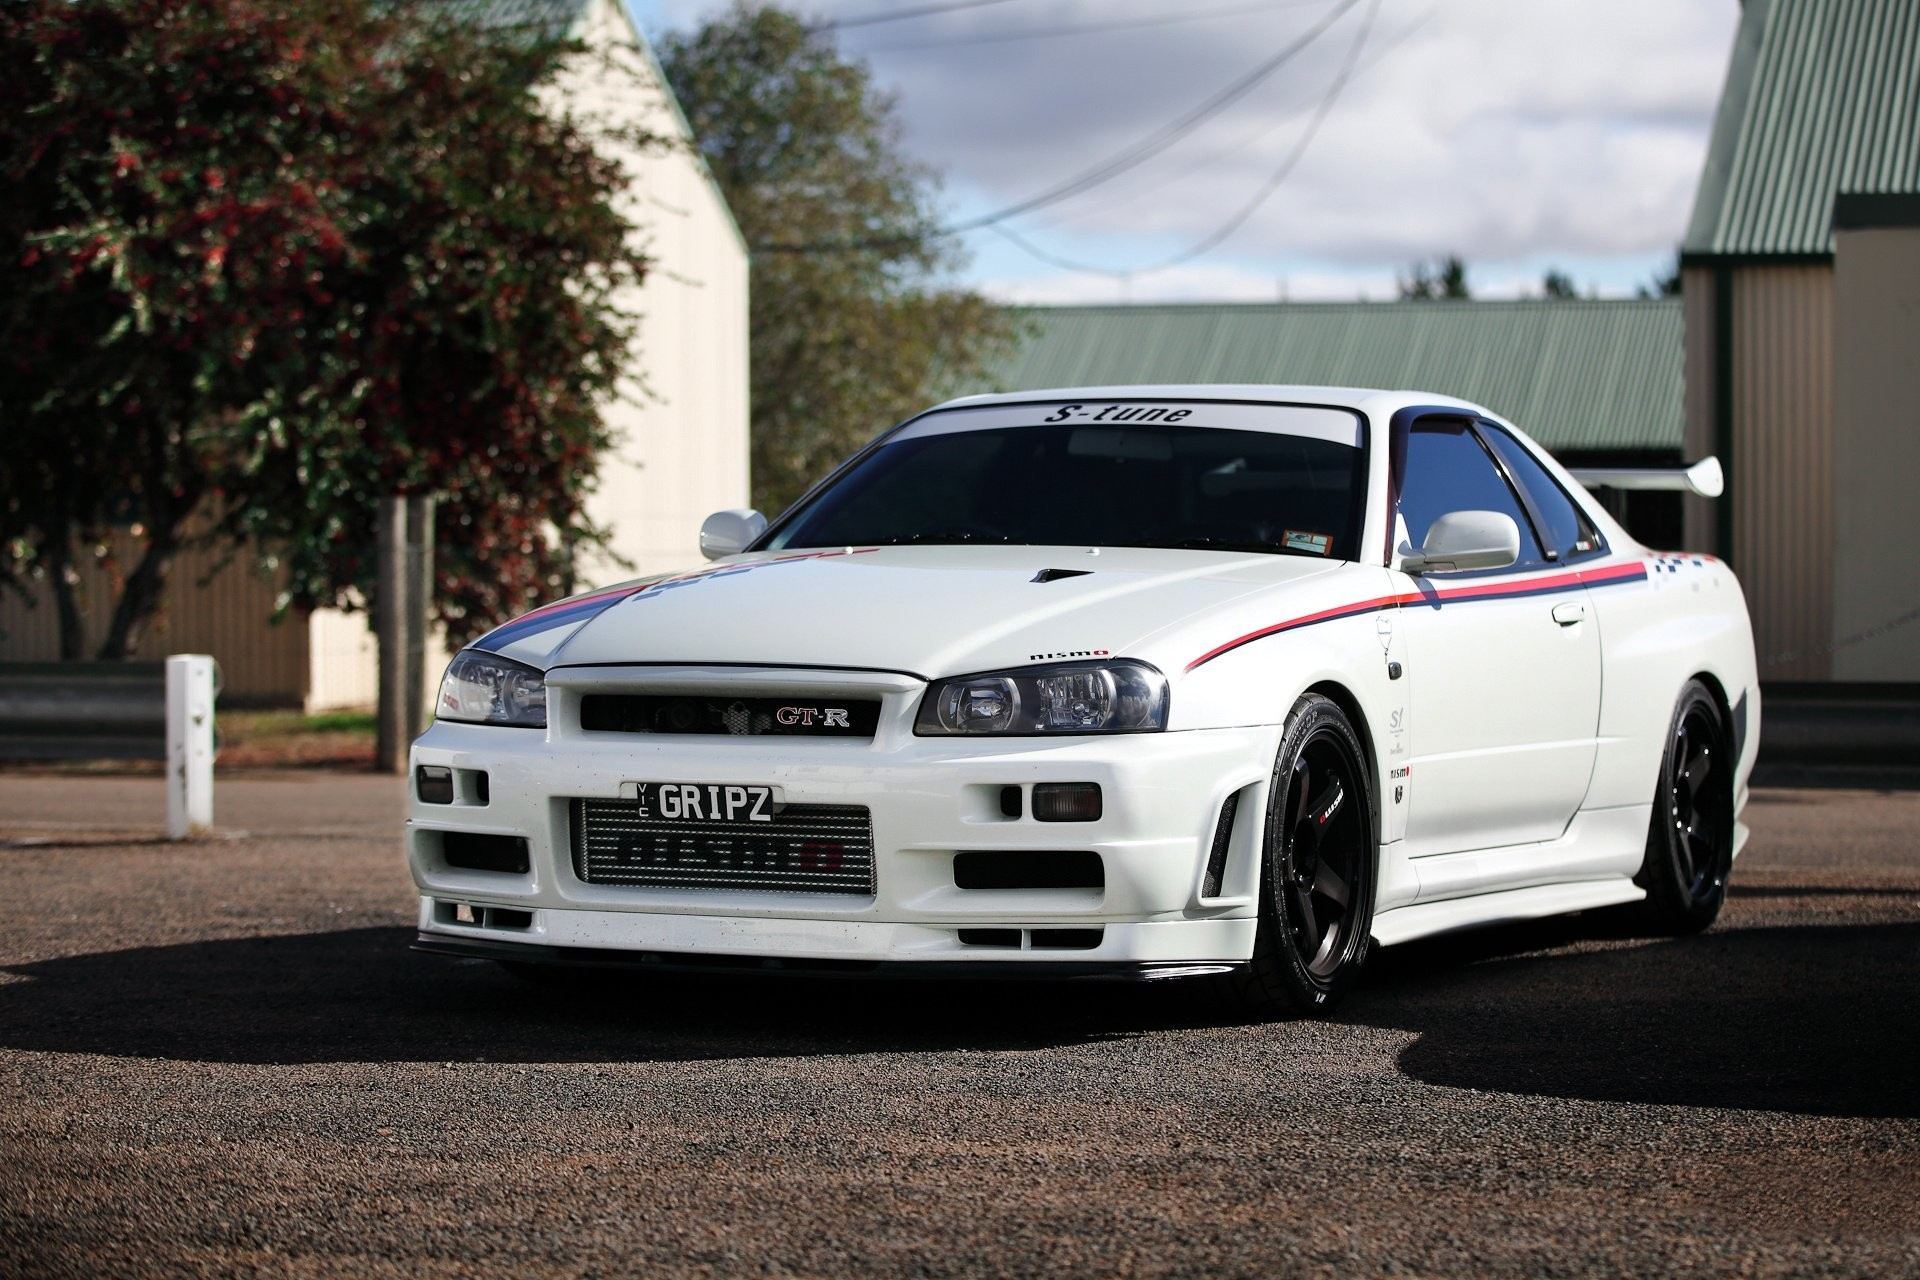 1920x1280 Nissan skyline gtr r car wallpaper Nissan Skyline GTR Wallpapers Wallpapers)